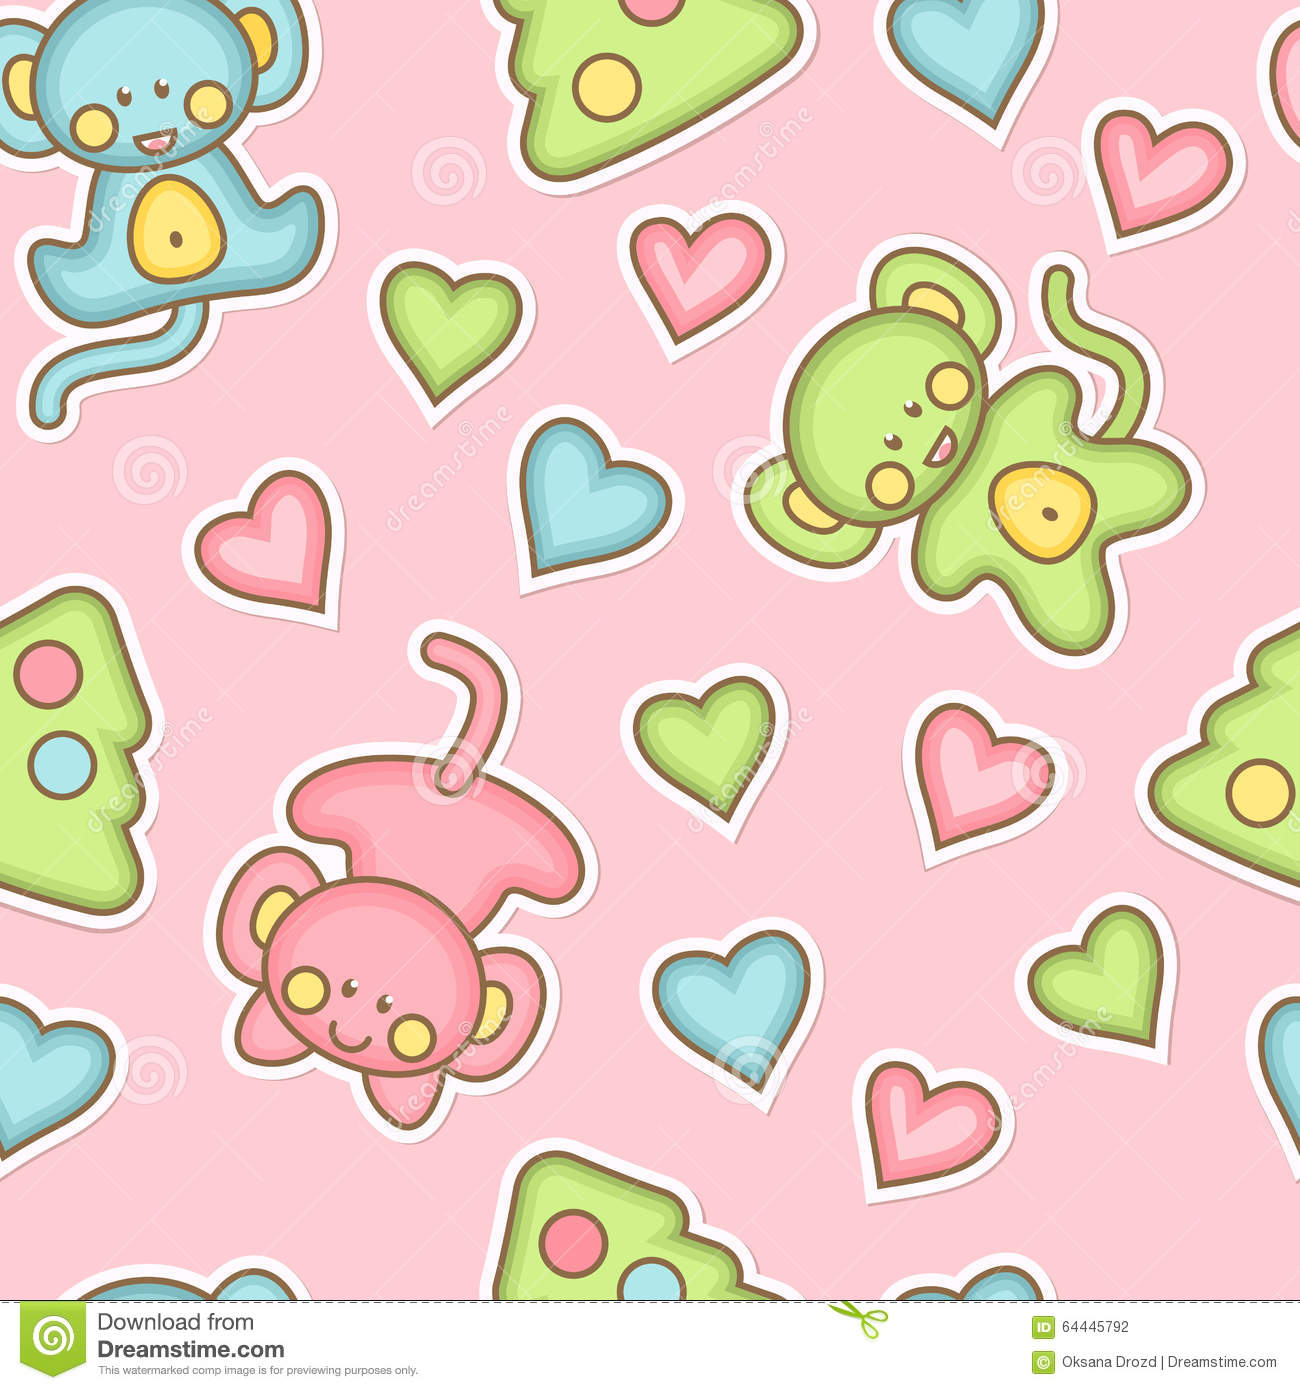 Babyish seamless pattern with baby monkeys and hearts